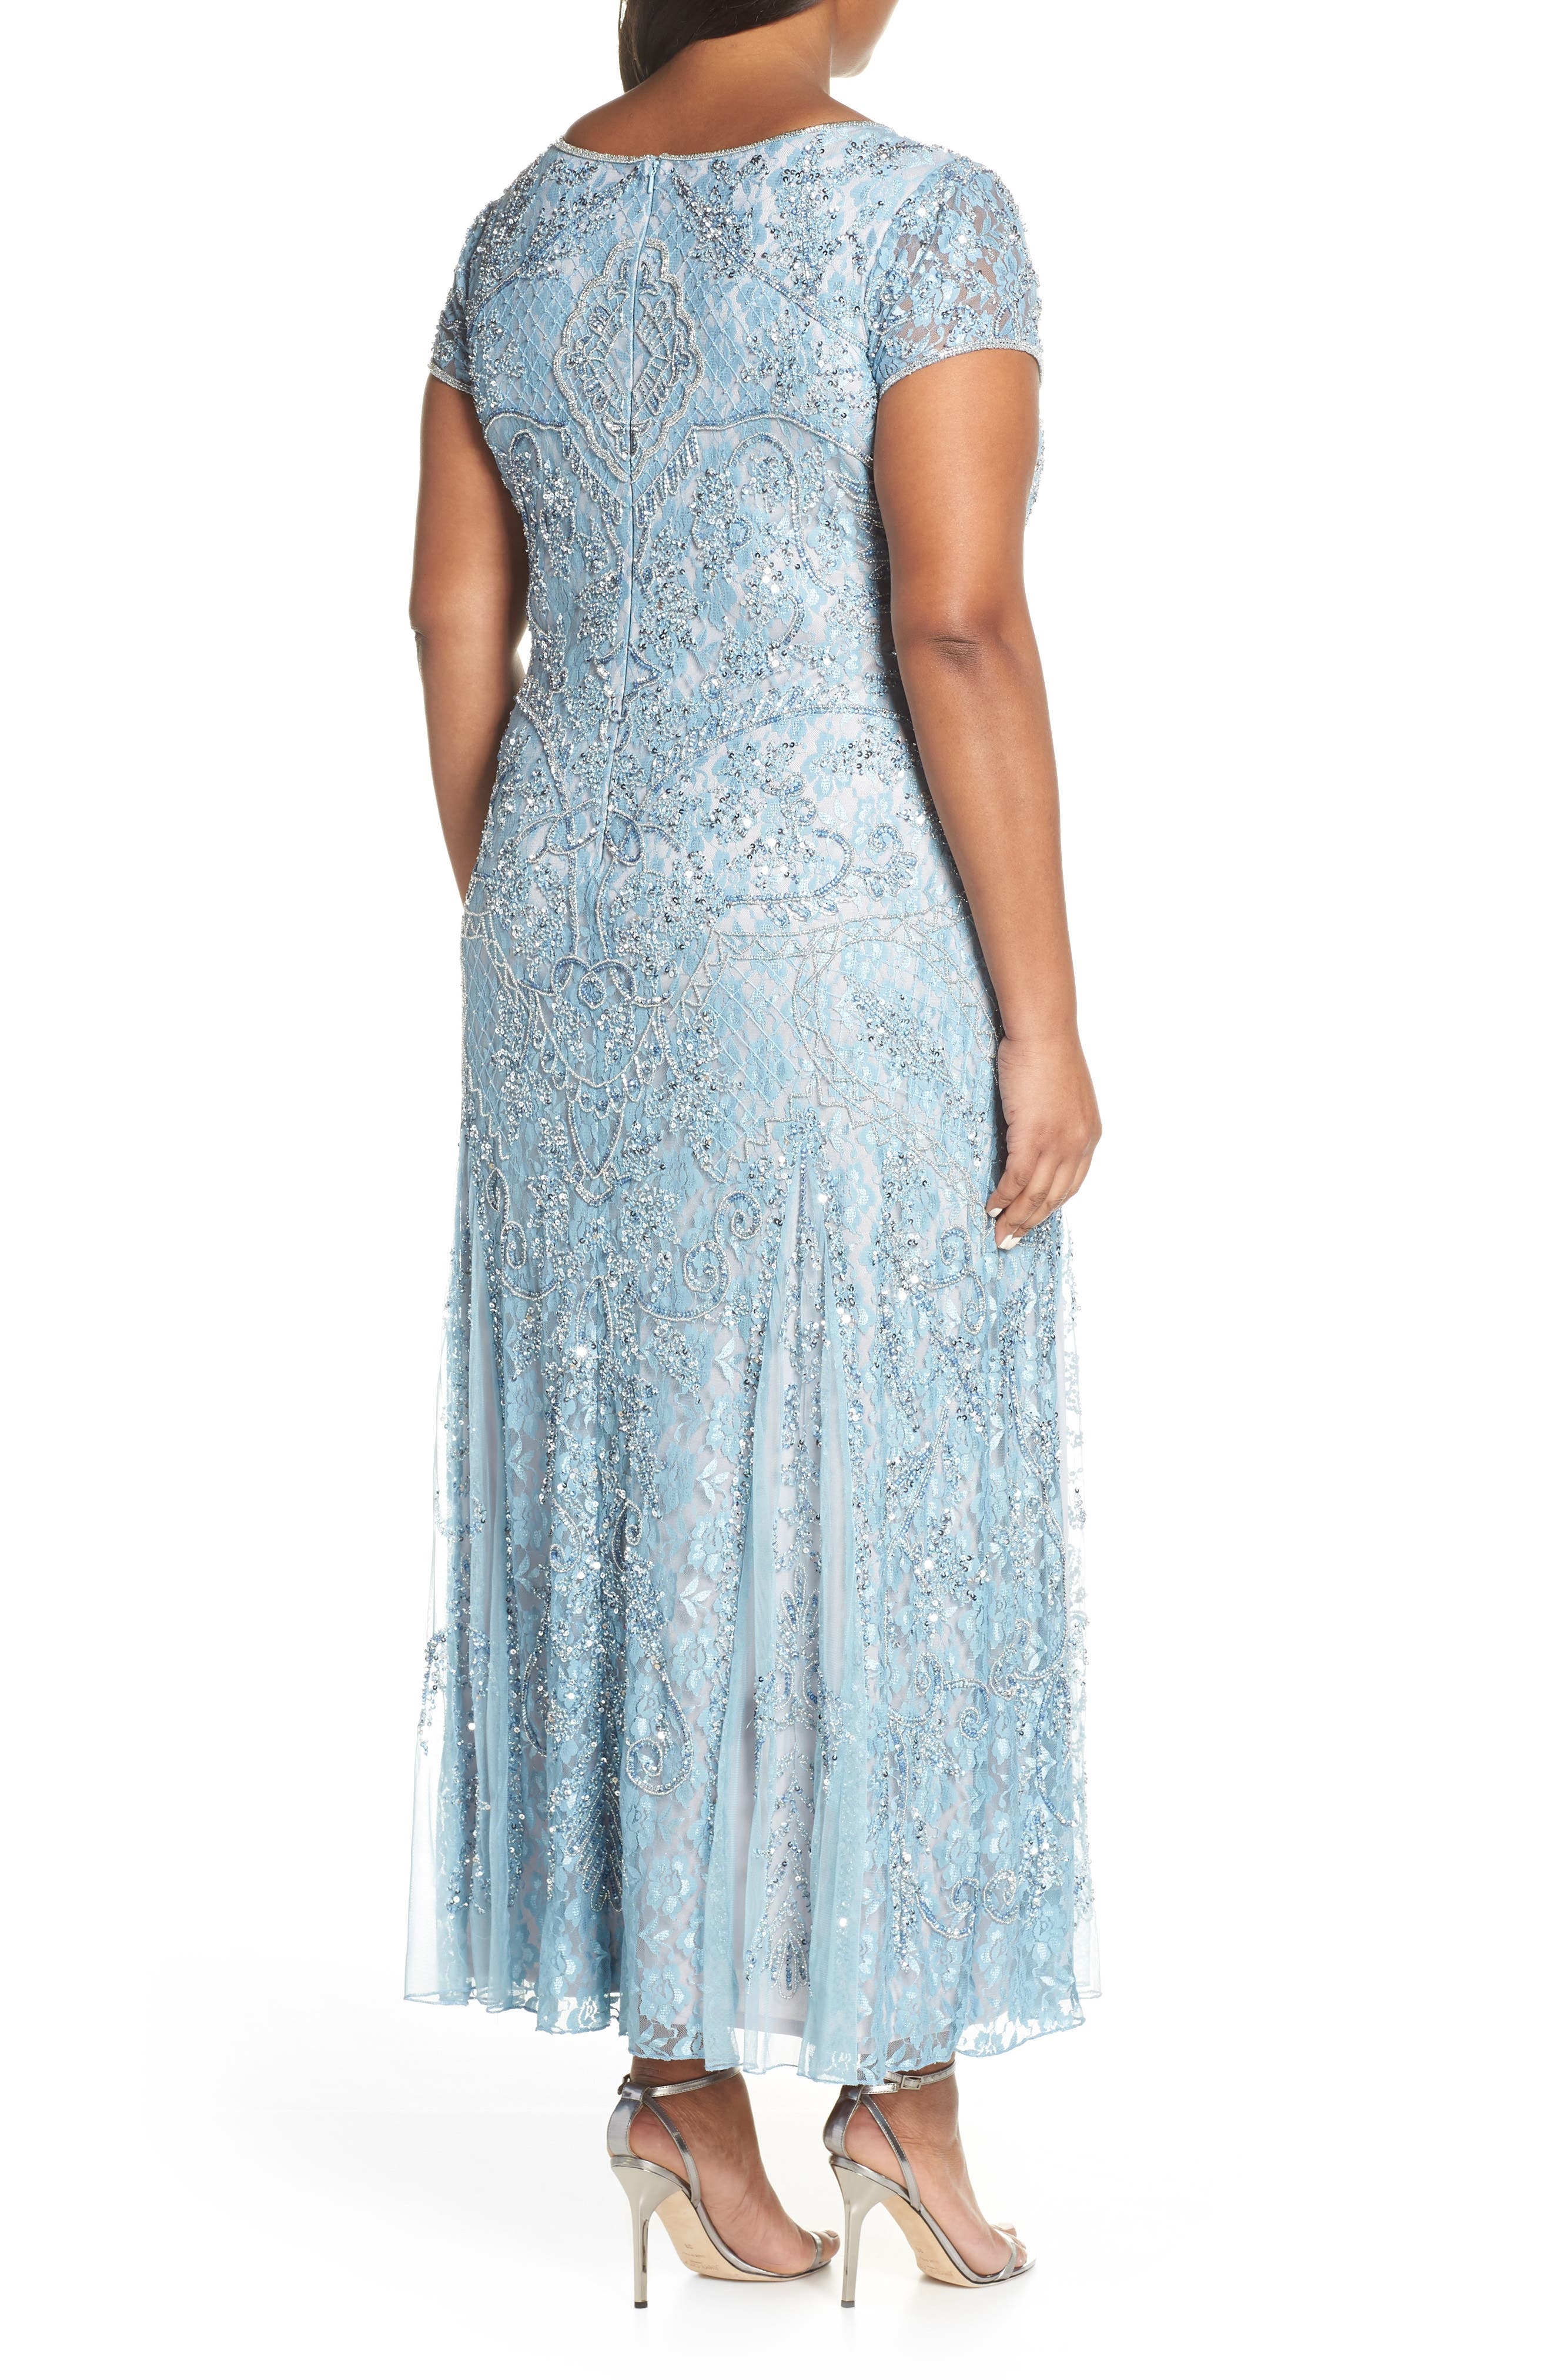 PISARRO NIGHTS,                             Embellished Lace A-Line Dress,                             Alternate thumbnail 2, color,                             SKY BLUE